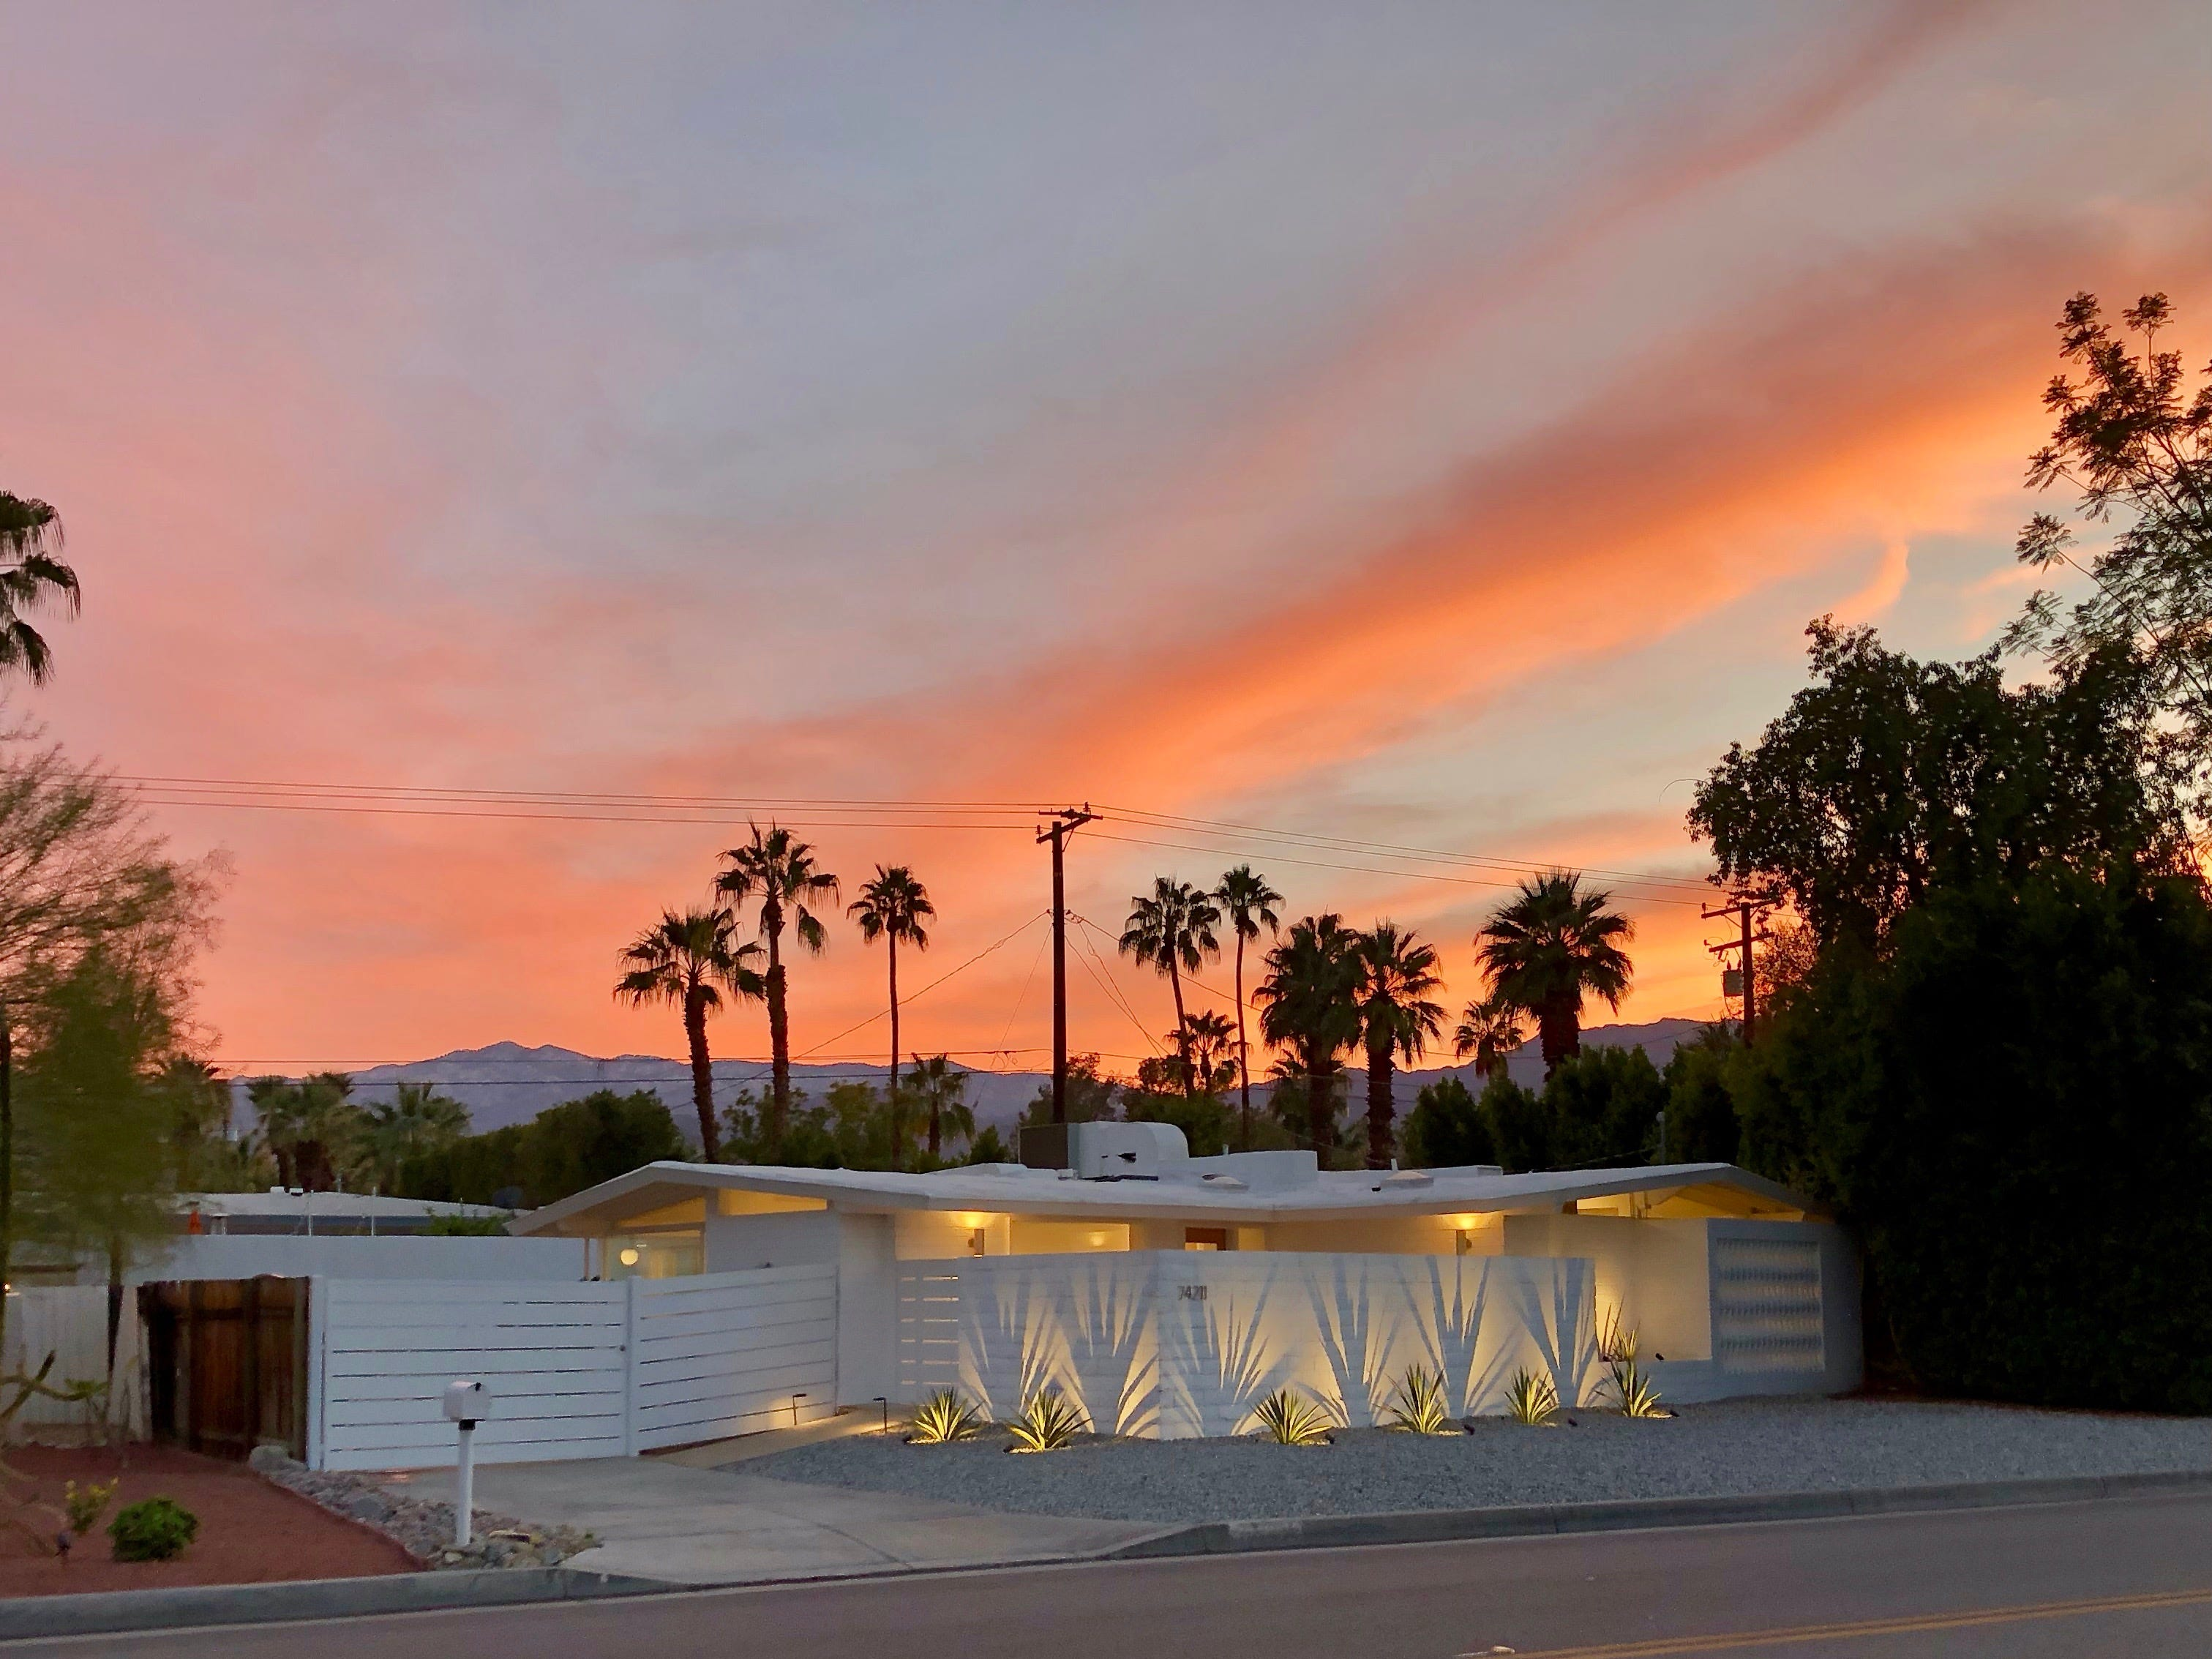 Rick Marino's recently renovated Walter S. White home in Palm Desert